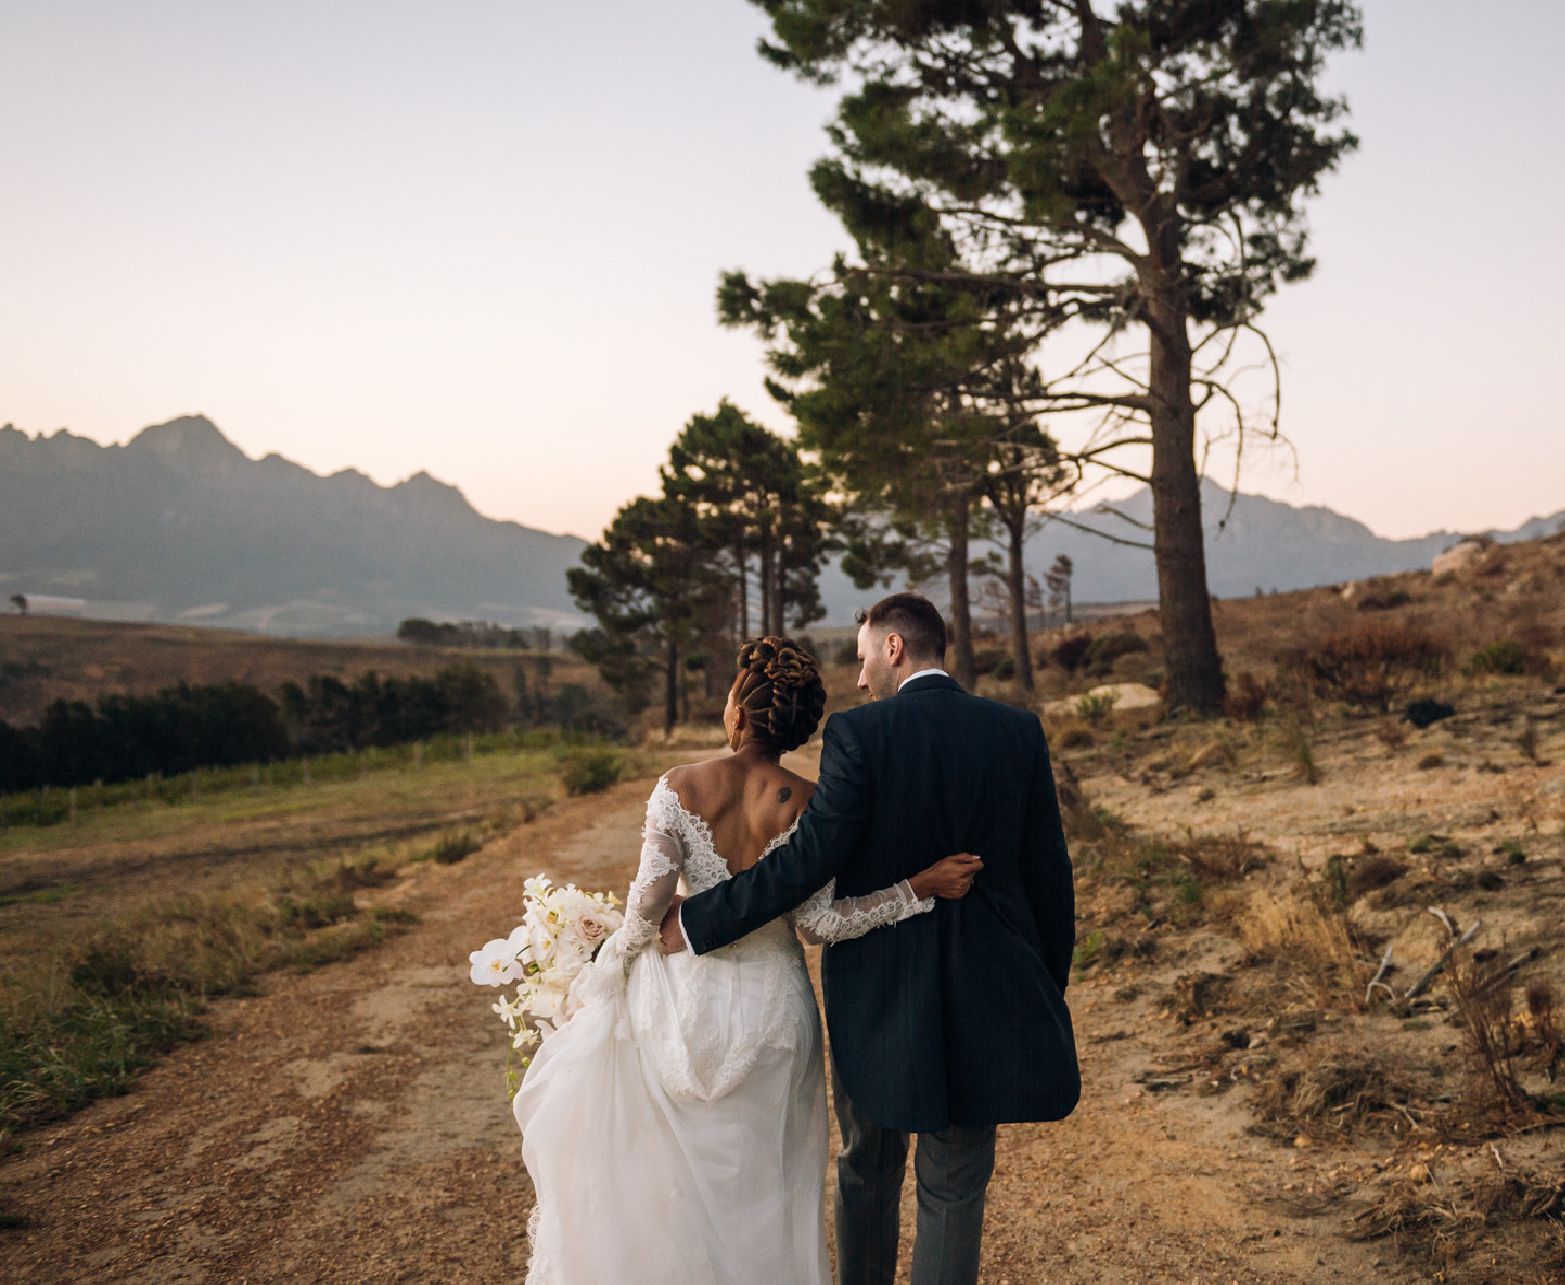 About - Aleit Weddings | Wedding Planning South Africa